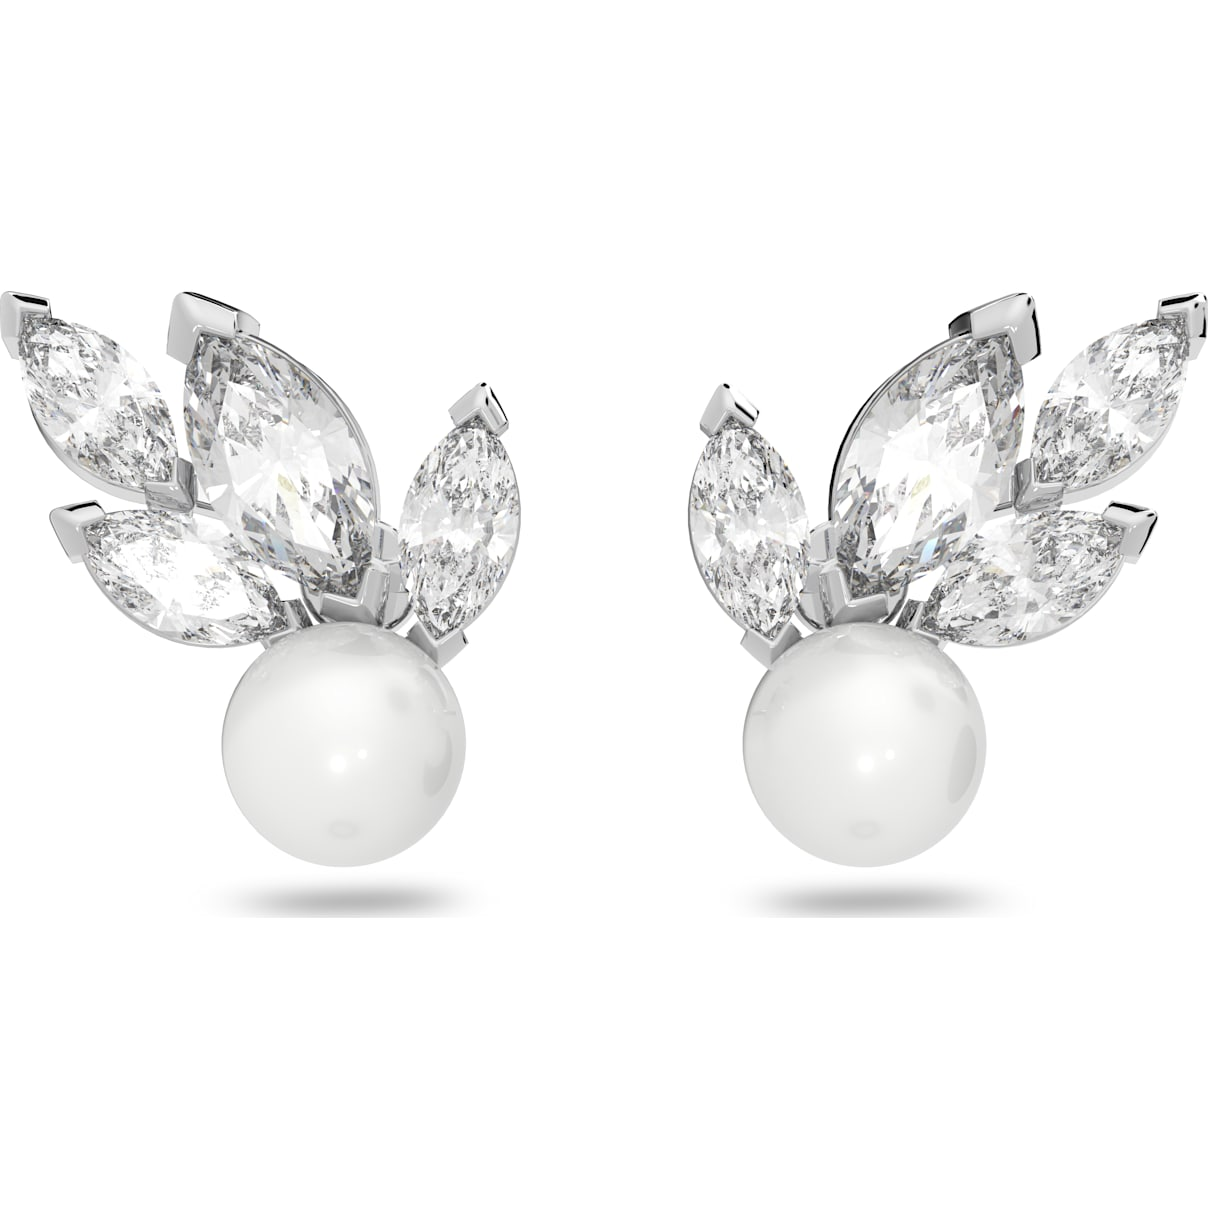 Swarovski Louison Pearl Pierced Earrings, White, Rhodium plated